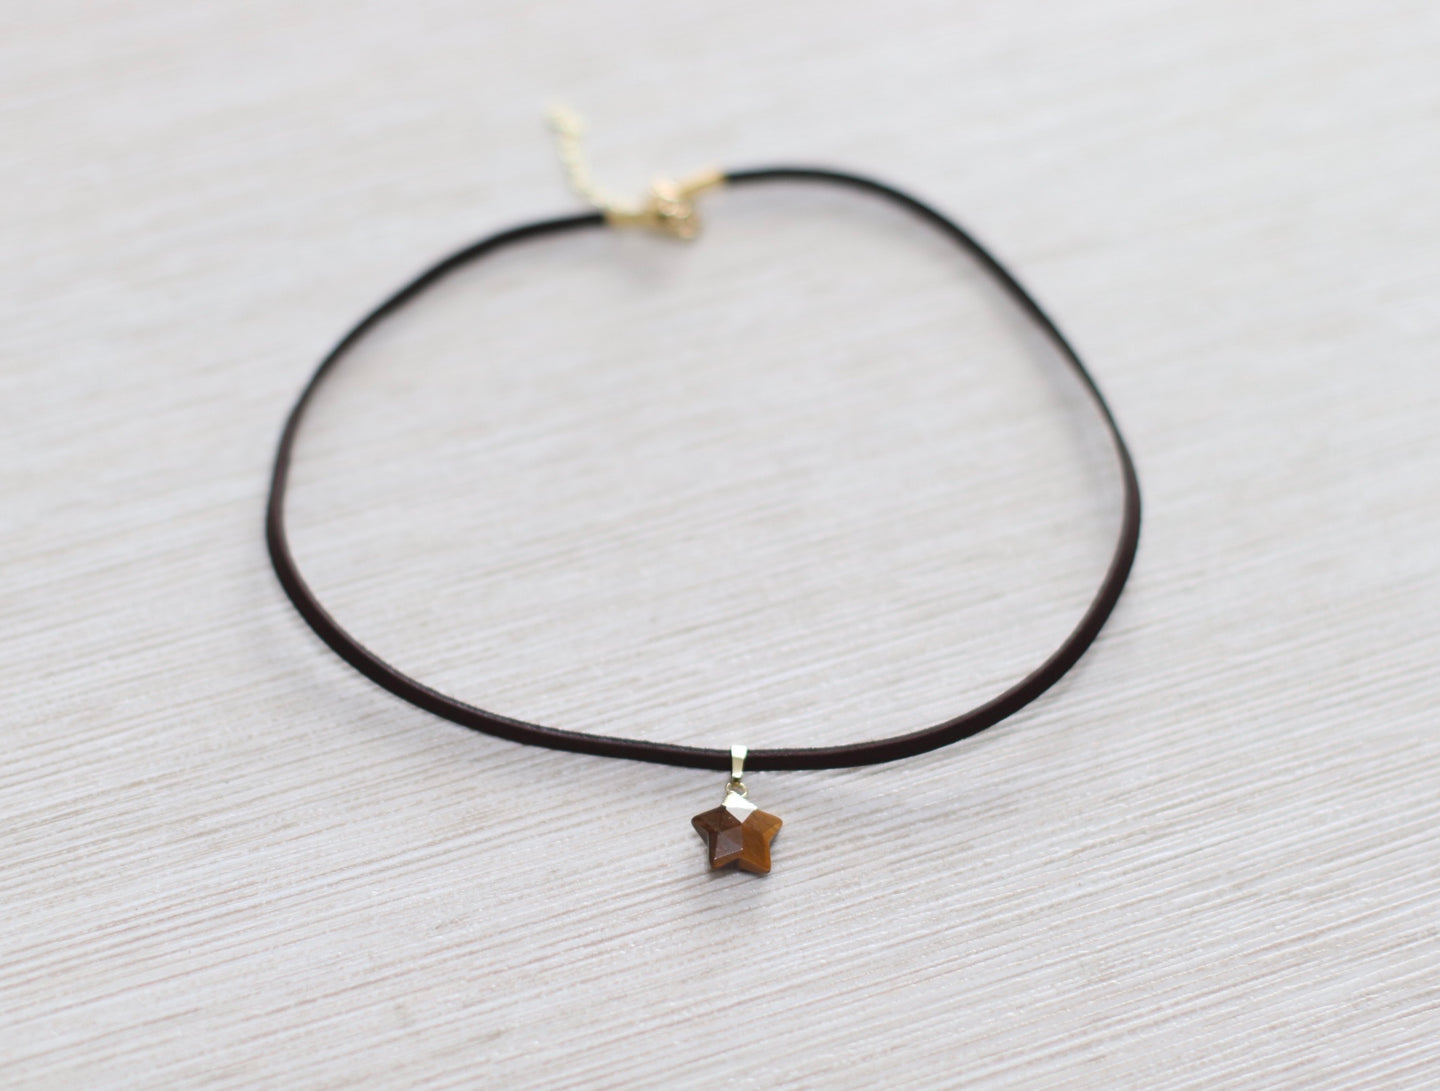 The Lucky Star Choker